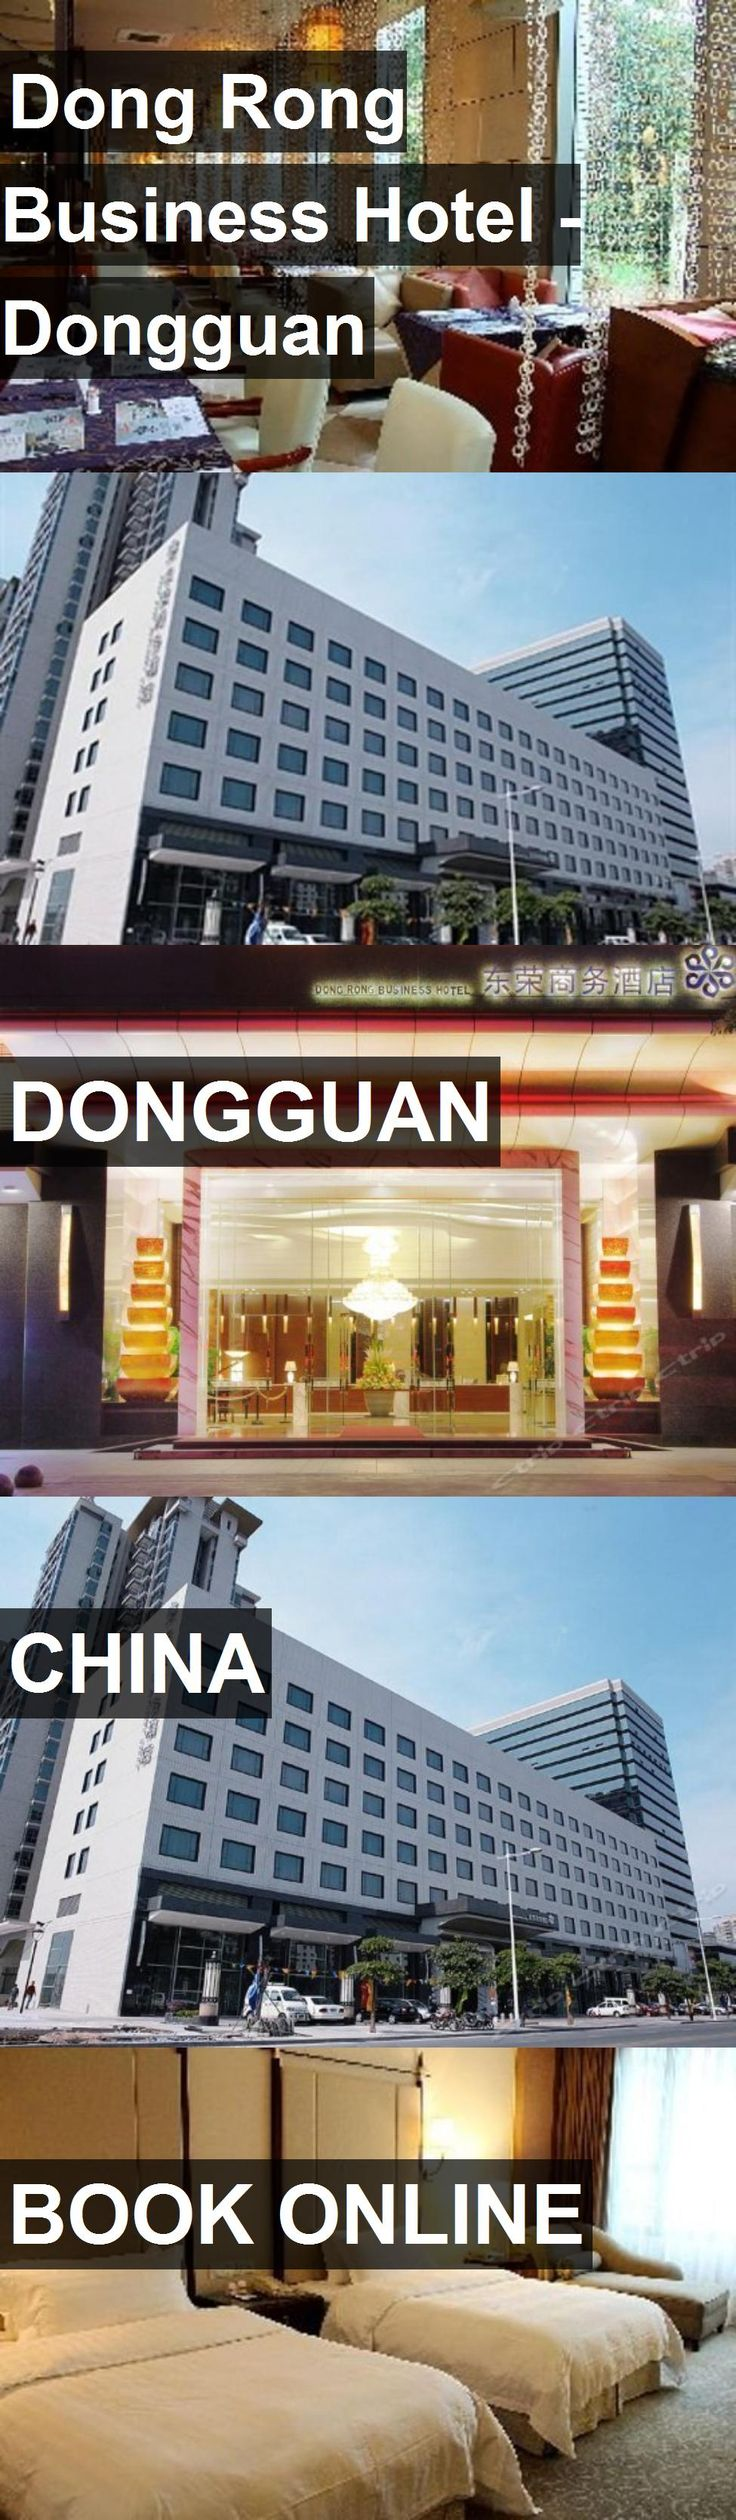 Dong Rong Business Hotel - Dongguan in Dongguan, China. For more information, photos, reviews and best prices please follow the link. #China #Dongguan #travel #vacation #hotel